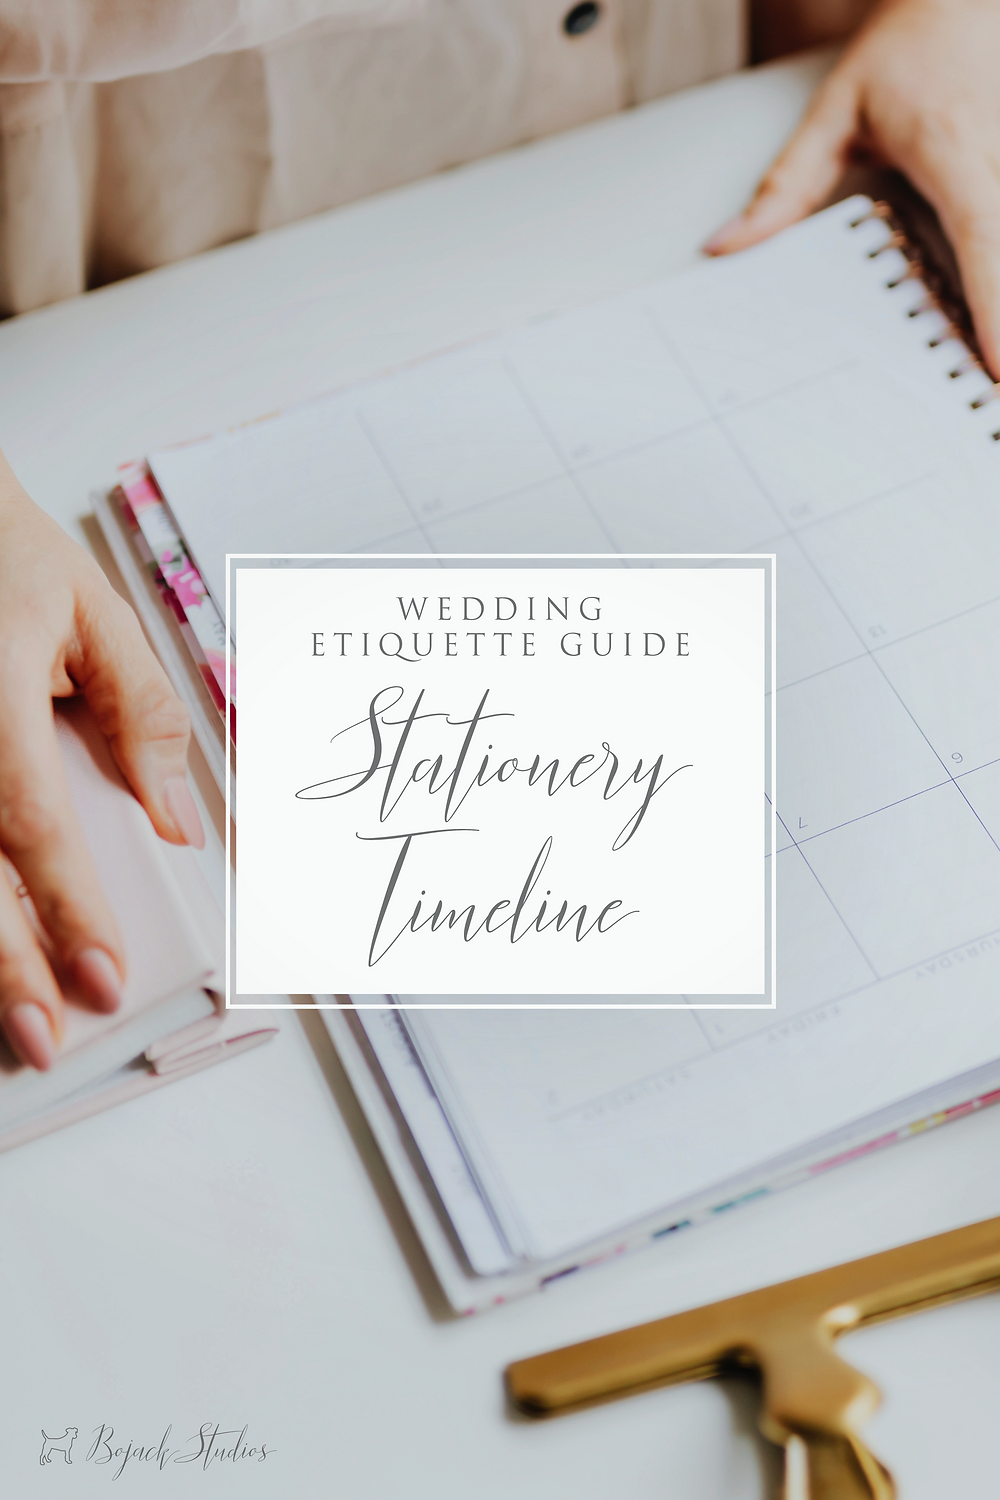 Wedding Stationery Timeline - Bojack Studios Etiquette Guide